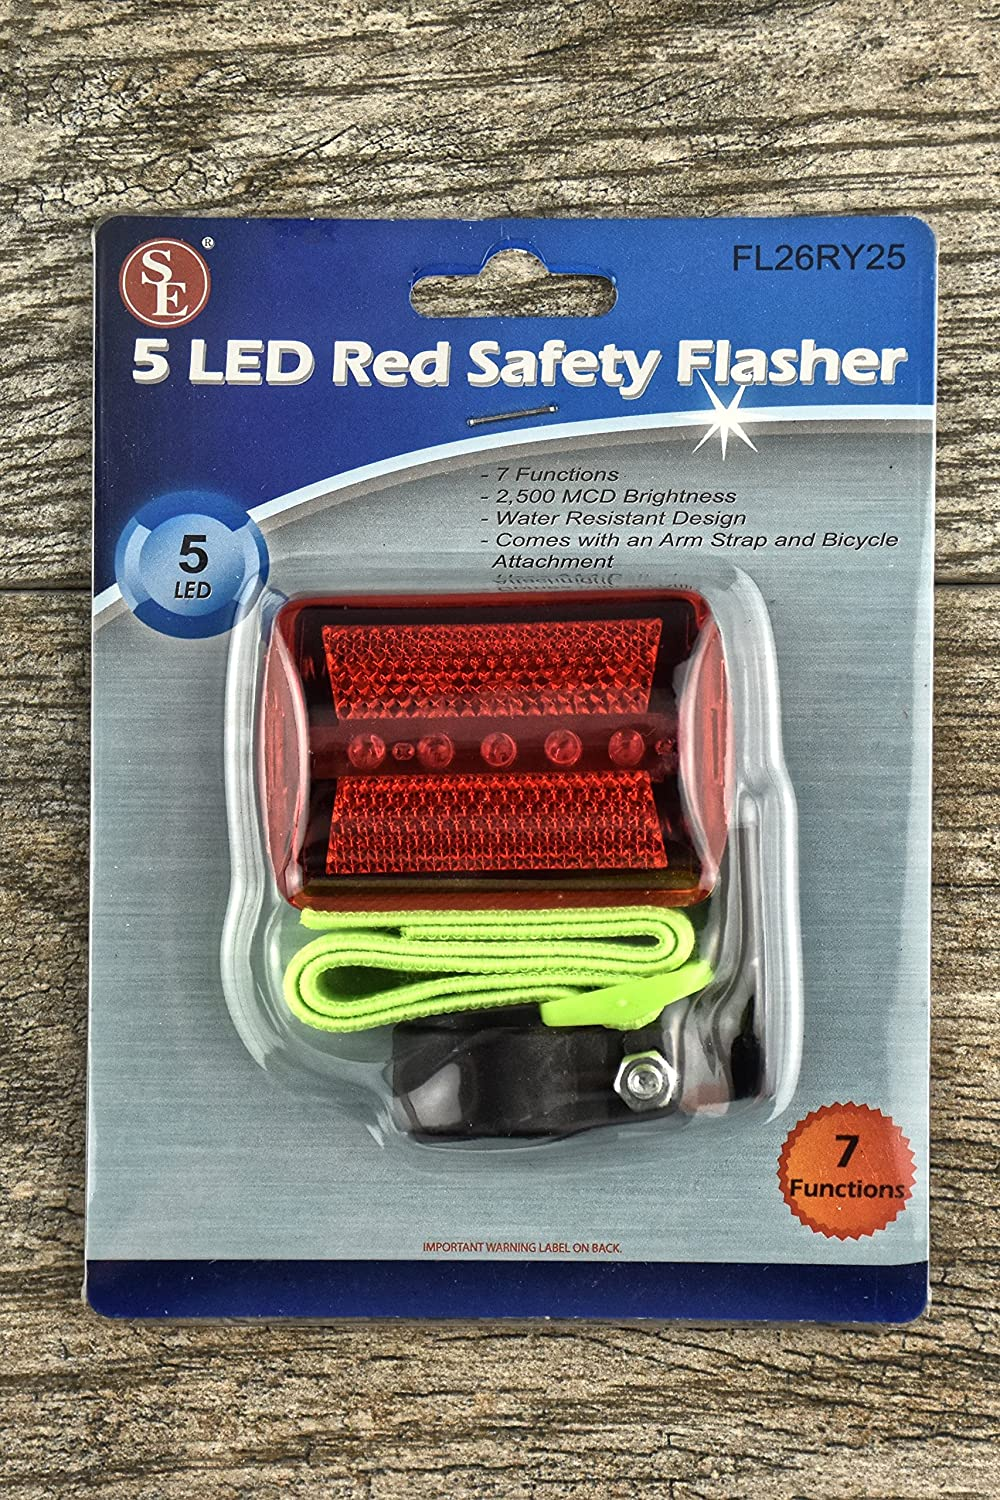 SE FL26YY45 5-LED Yellow Safety Flasher with Bicycle Attachment and Arm Strap Sona Enterprises